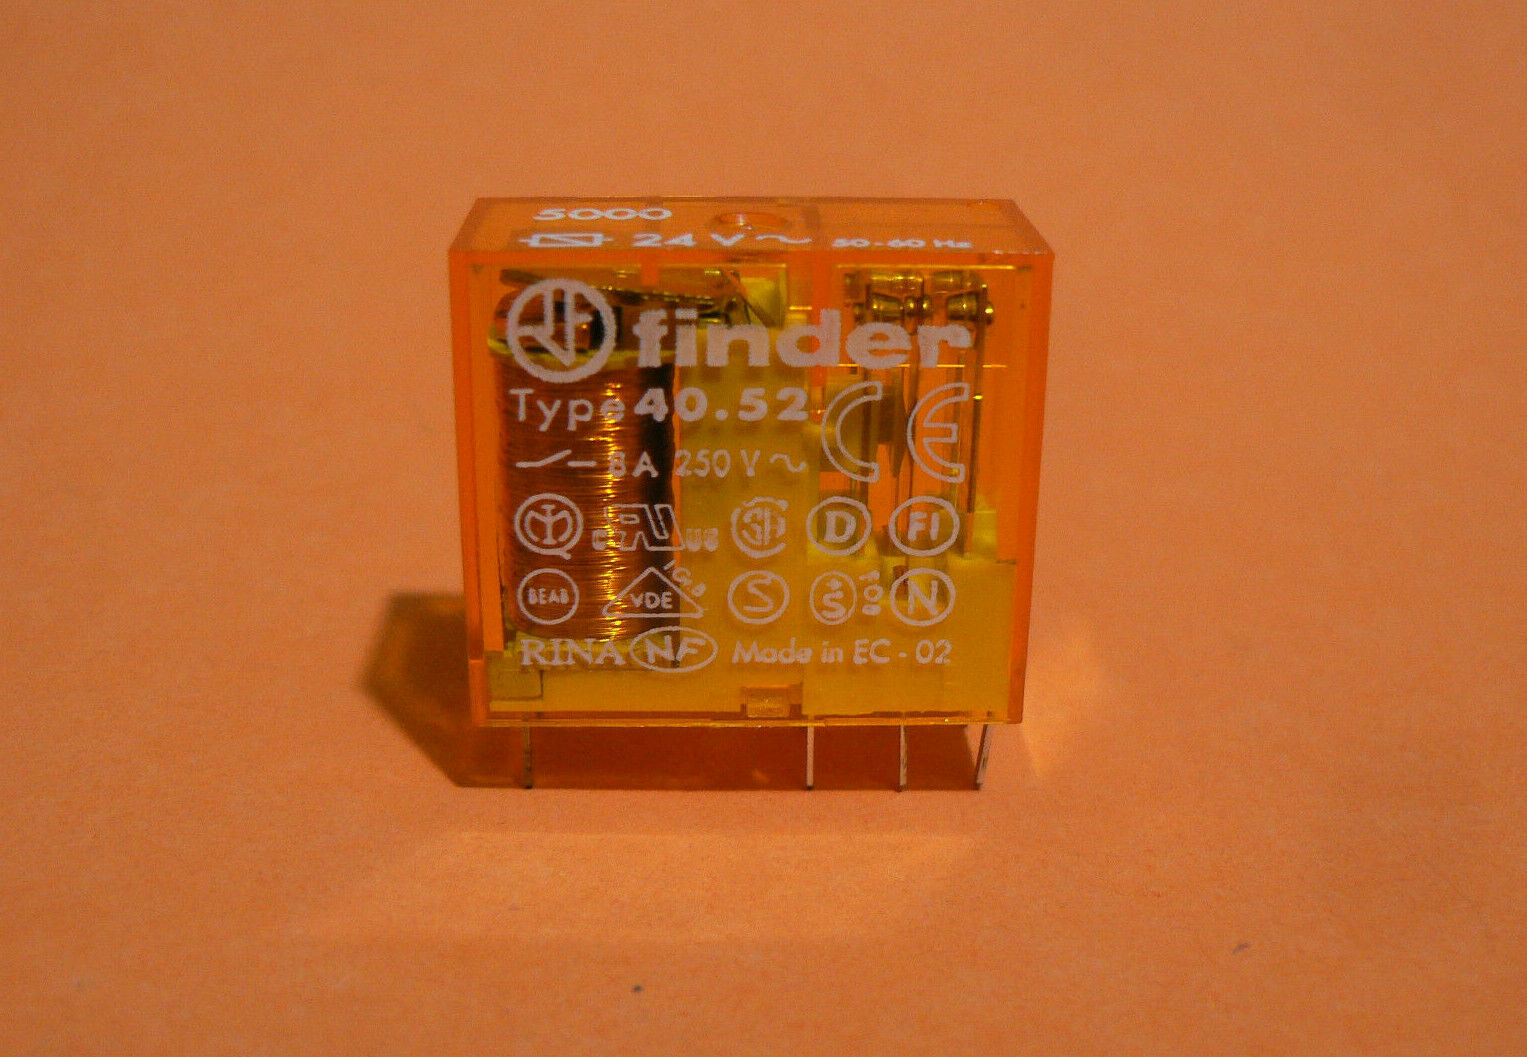 24VAC 8A//250VAC 8A//30VDC FIN electromagnetic DPDT Ucoil 46.52.8.024.0040 Relay